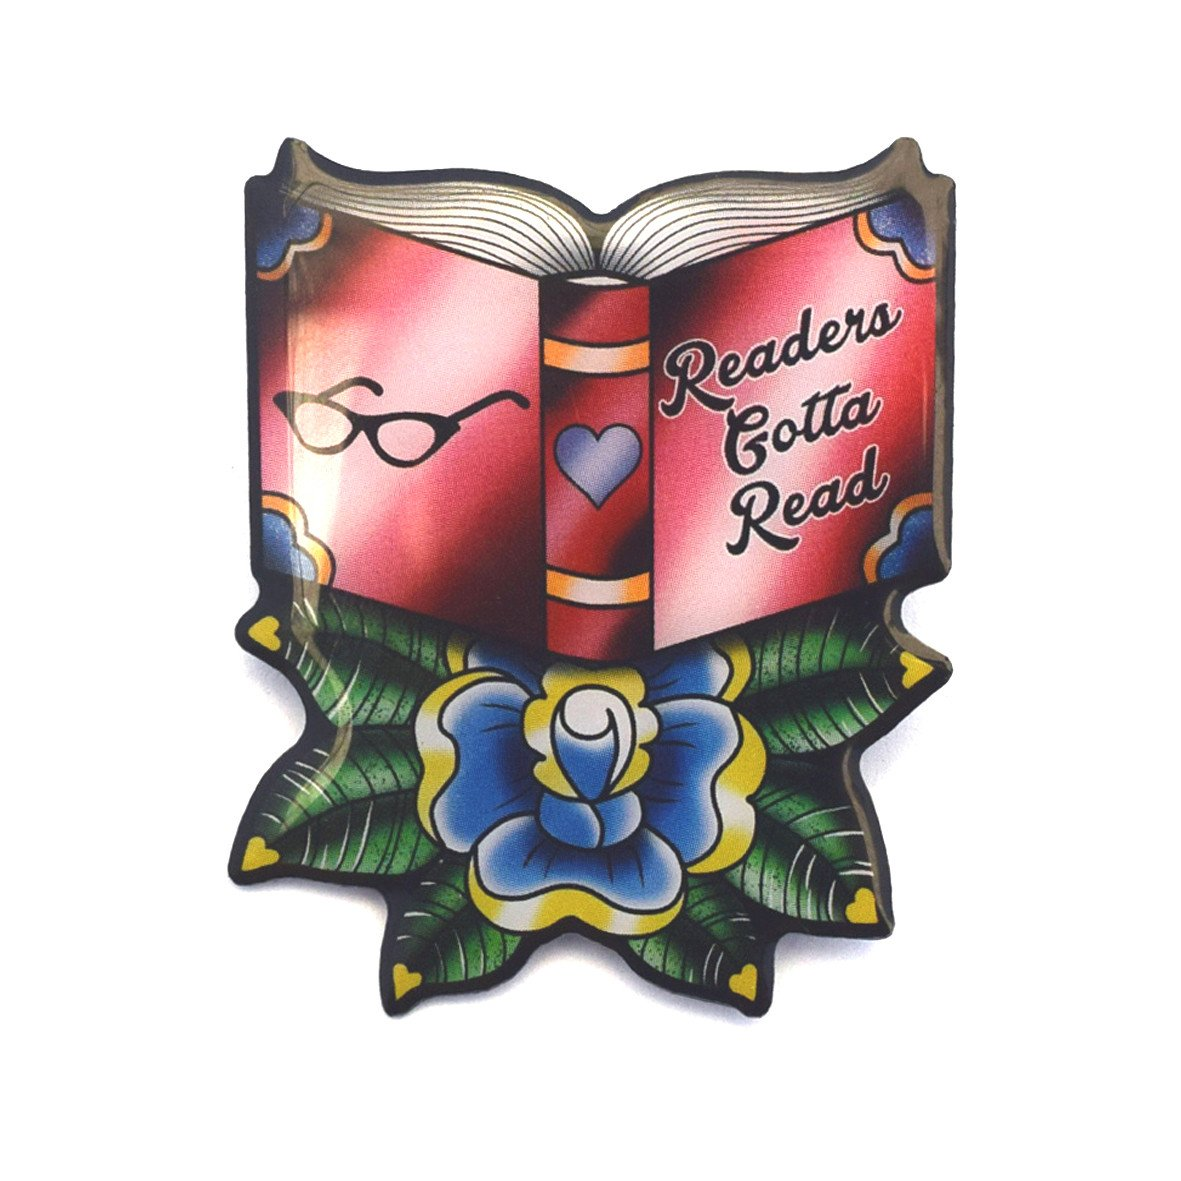 readers gotta read brooch